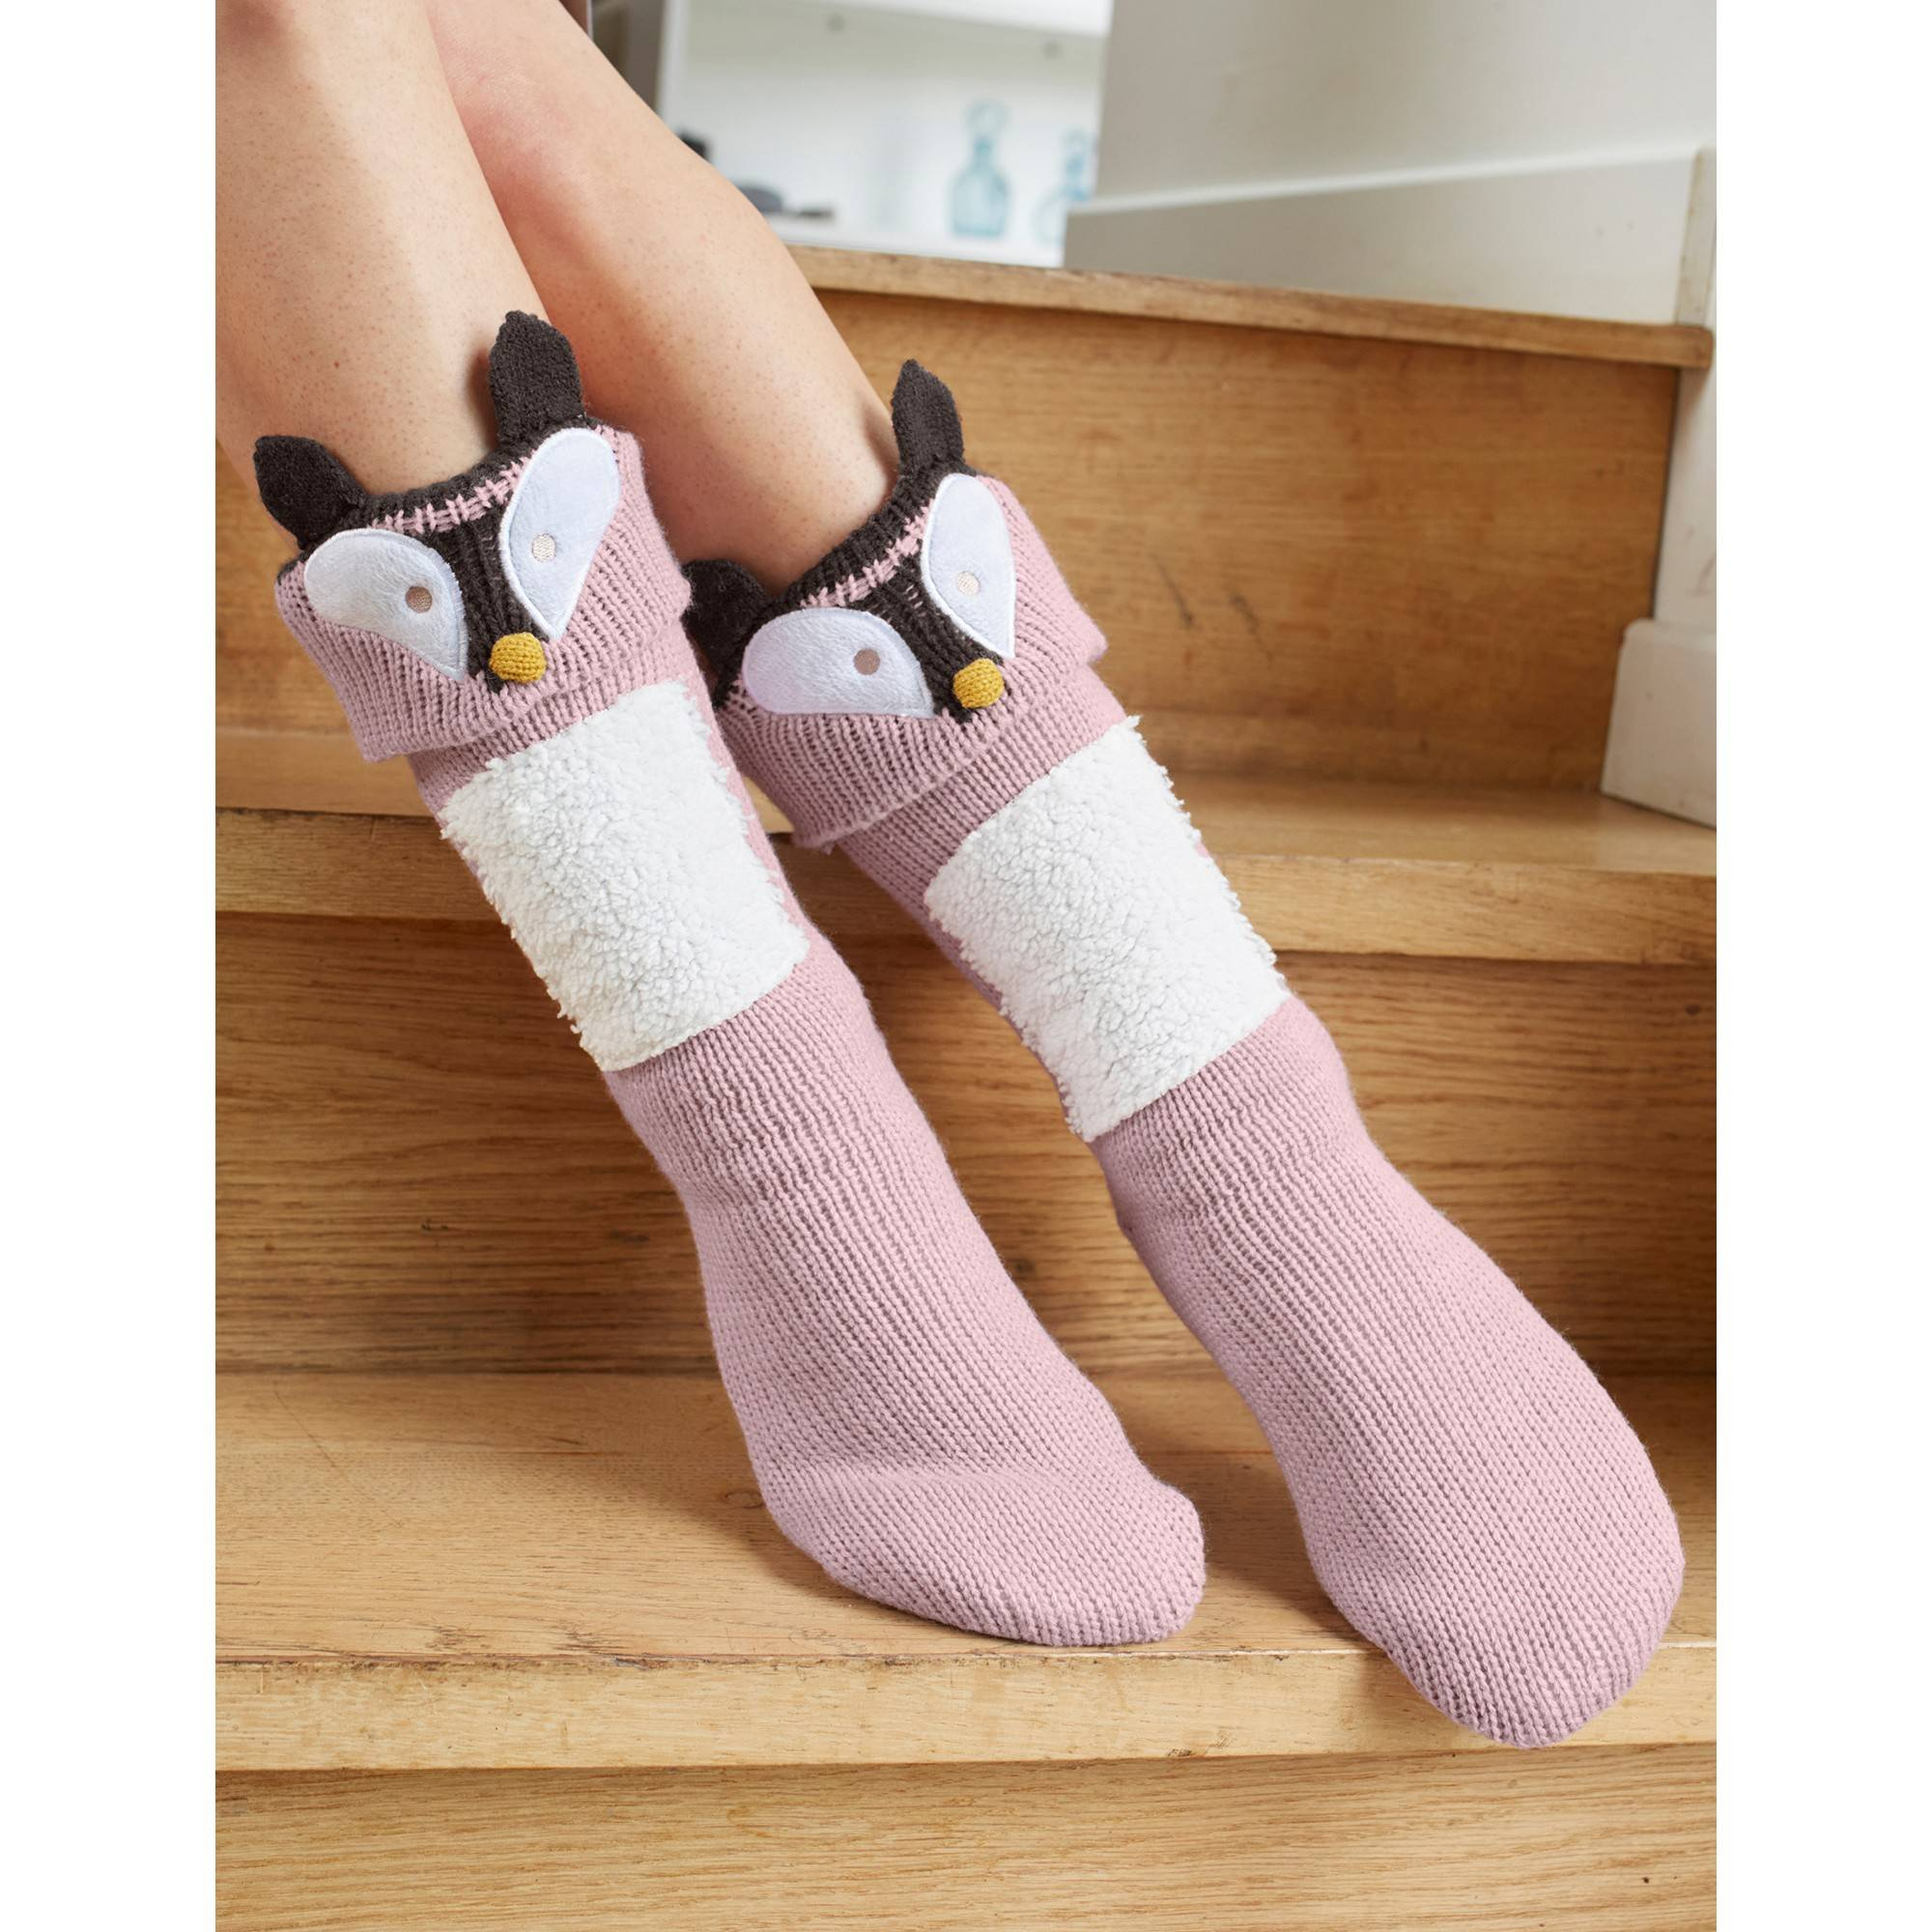 Chaussons-chaussettes cocooning - renard - taupe - Taille : 40,41 - Blancheporte